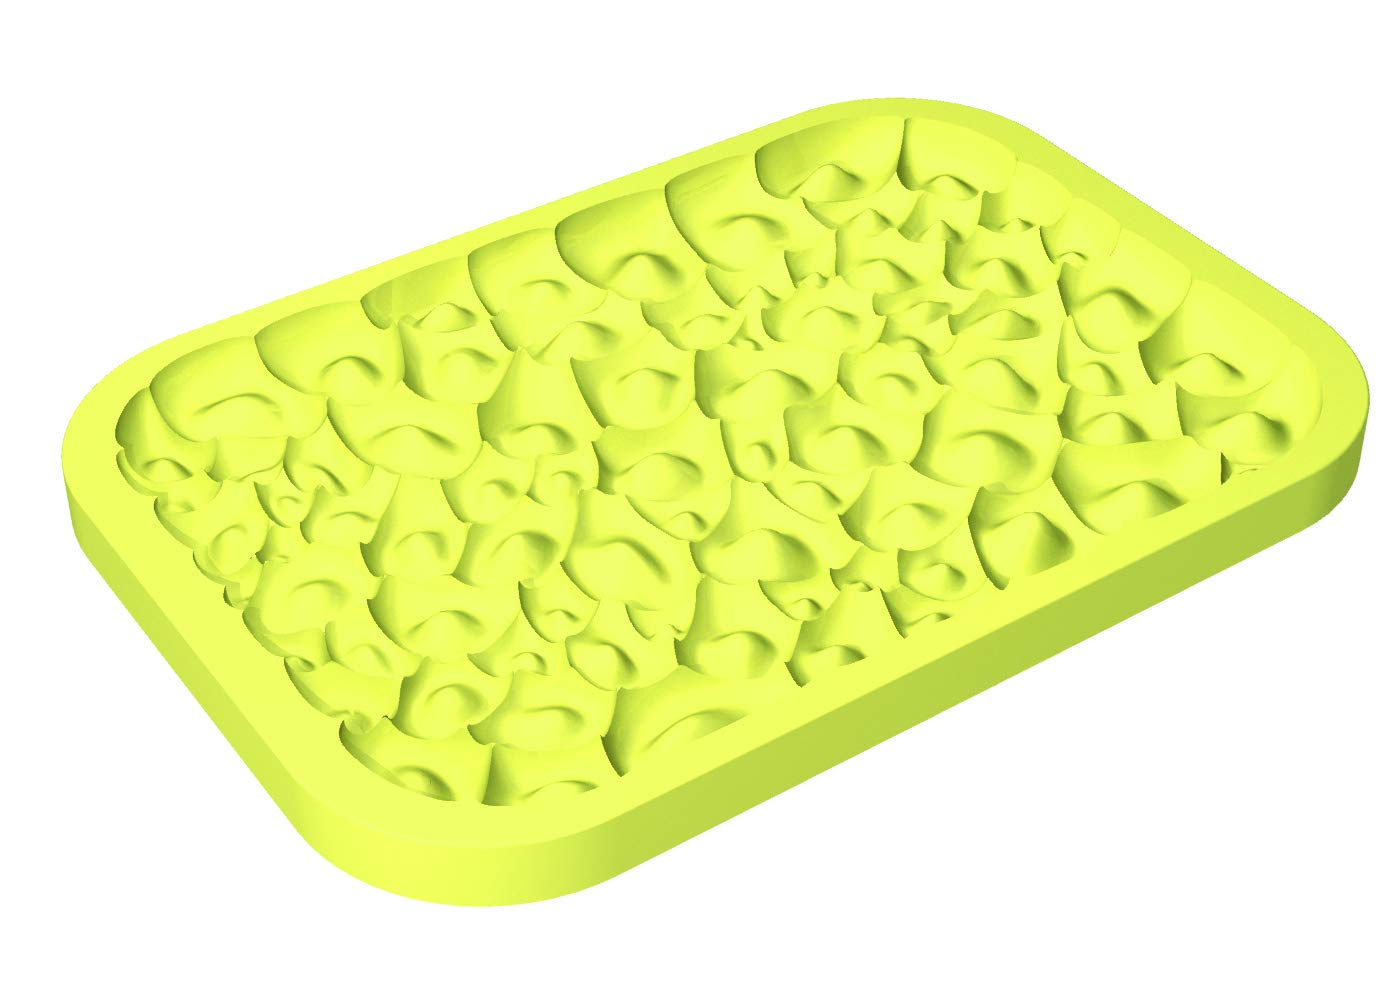 "Pavoni""Top Ice"" Silicone Mold for Shaping the Top of Ice Cream in a Food Pan - ""Coral"" Design"